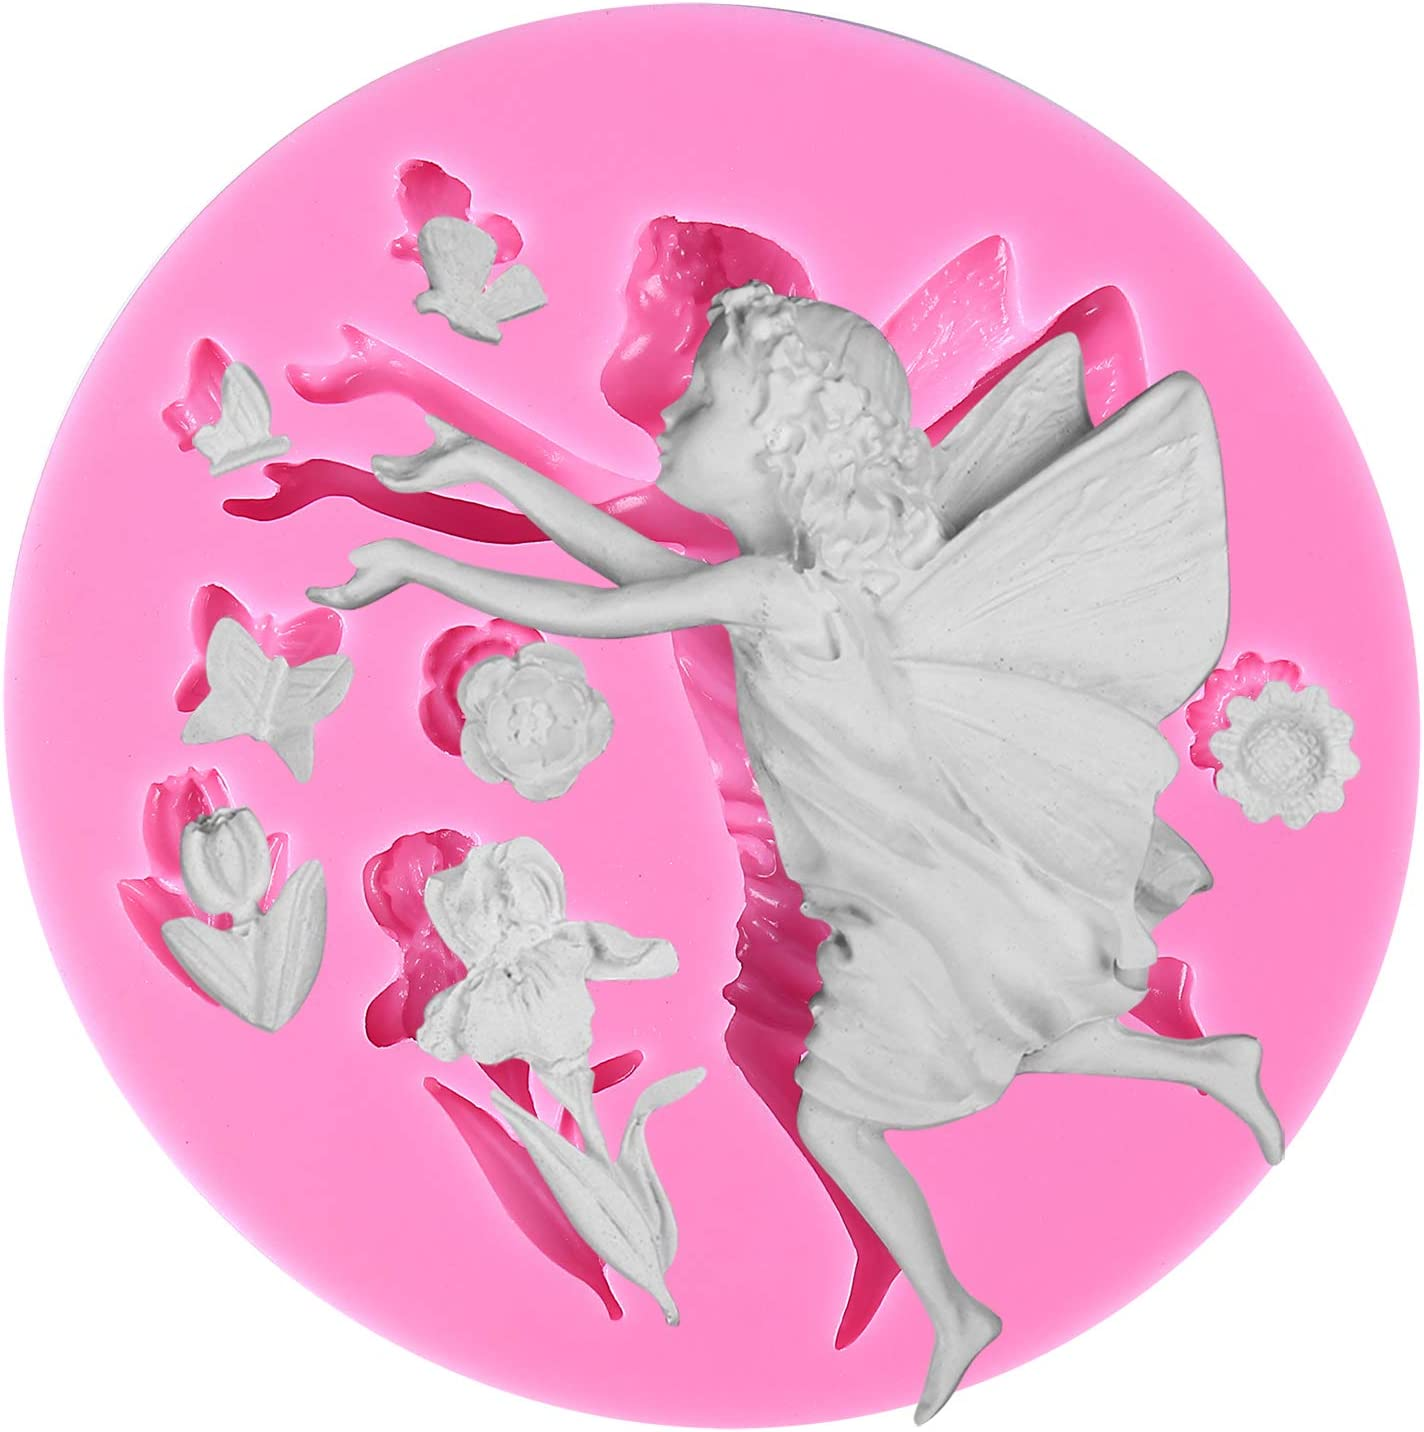 Funshowcase Fairy or Angel with Flowers Silicone Cake Decorating Mold, for Fondant Cake Decoration, Cupcake Topper, Polymer Clay, Crafting, Resin Epoxy, Jewelry Making 8.5x8.5x1.5cm